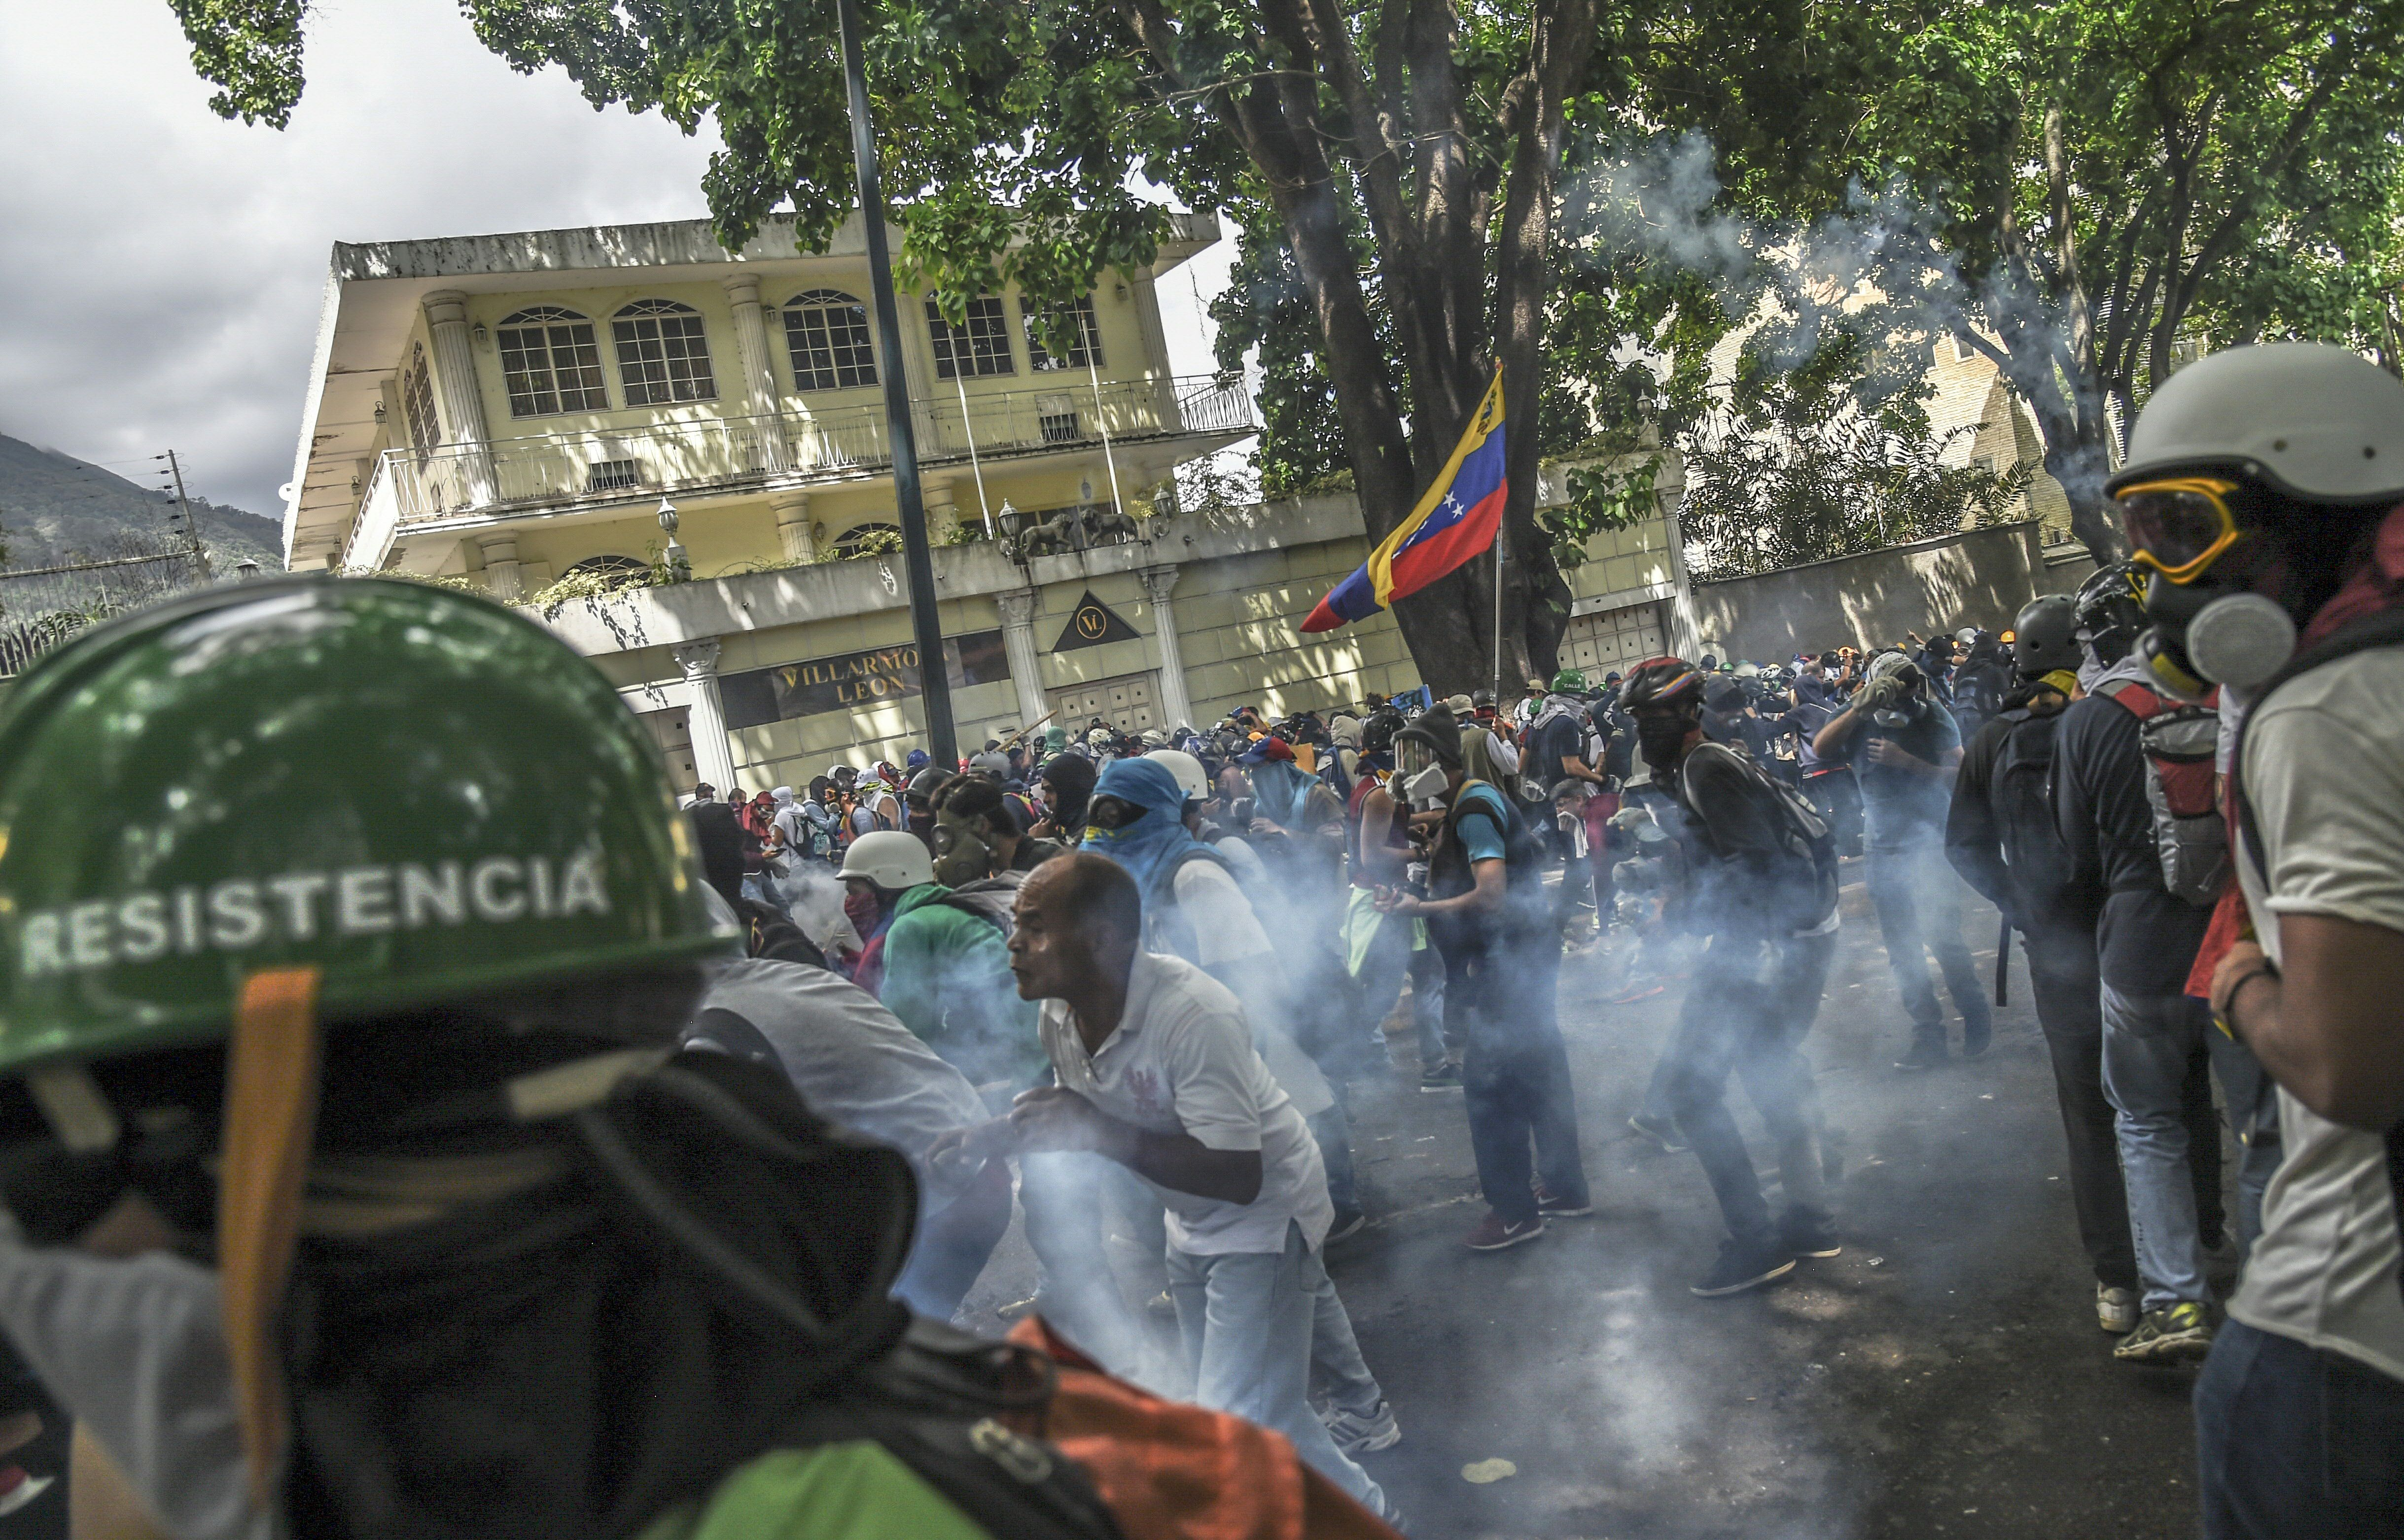 Opposition activists clash with riot police during a march against Venezuelan President Nicolas Maduro held on May Day in Caracas, May 1, 2017.